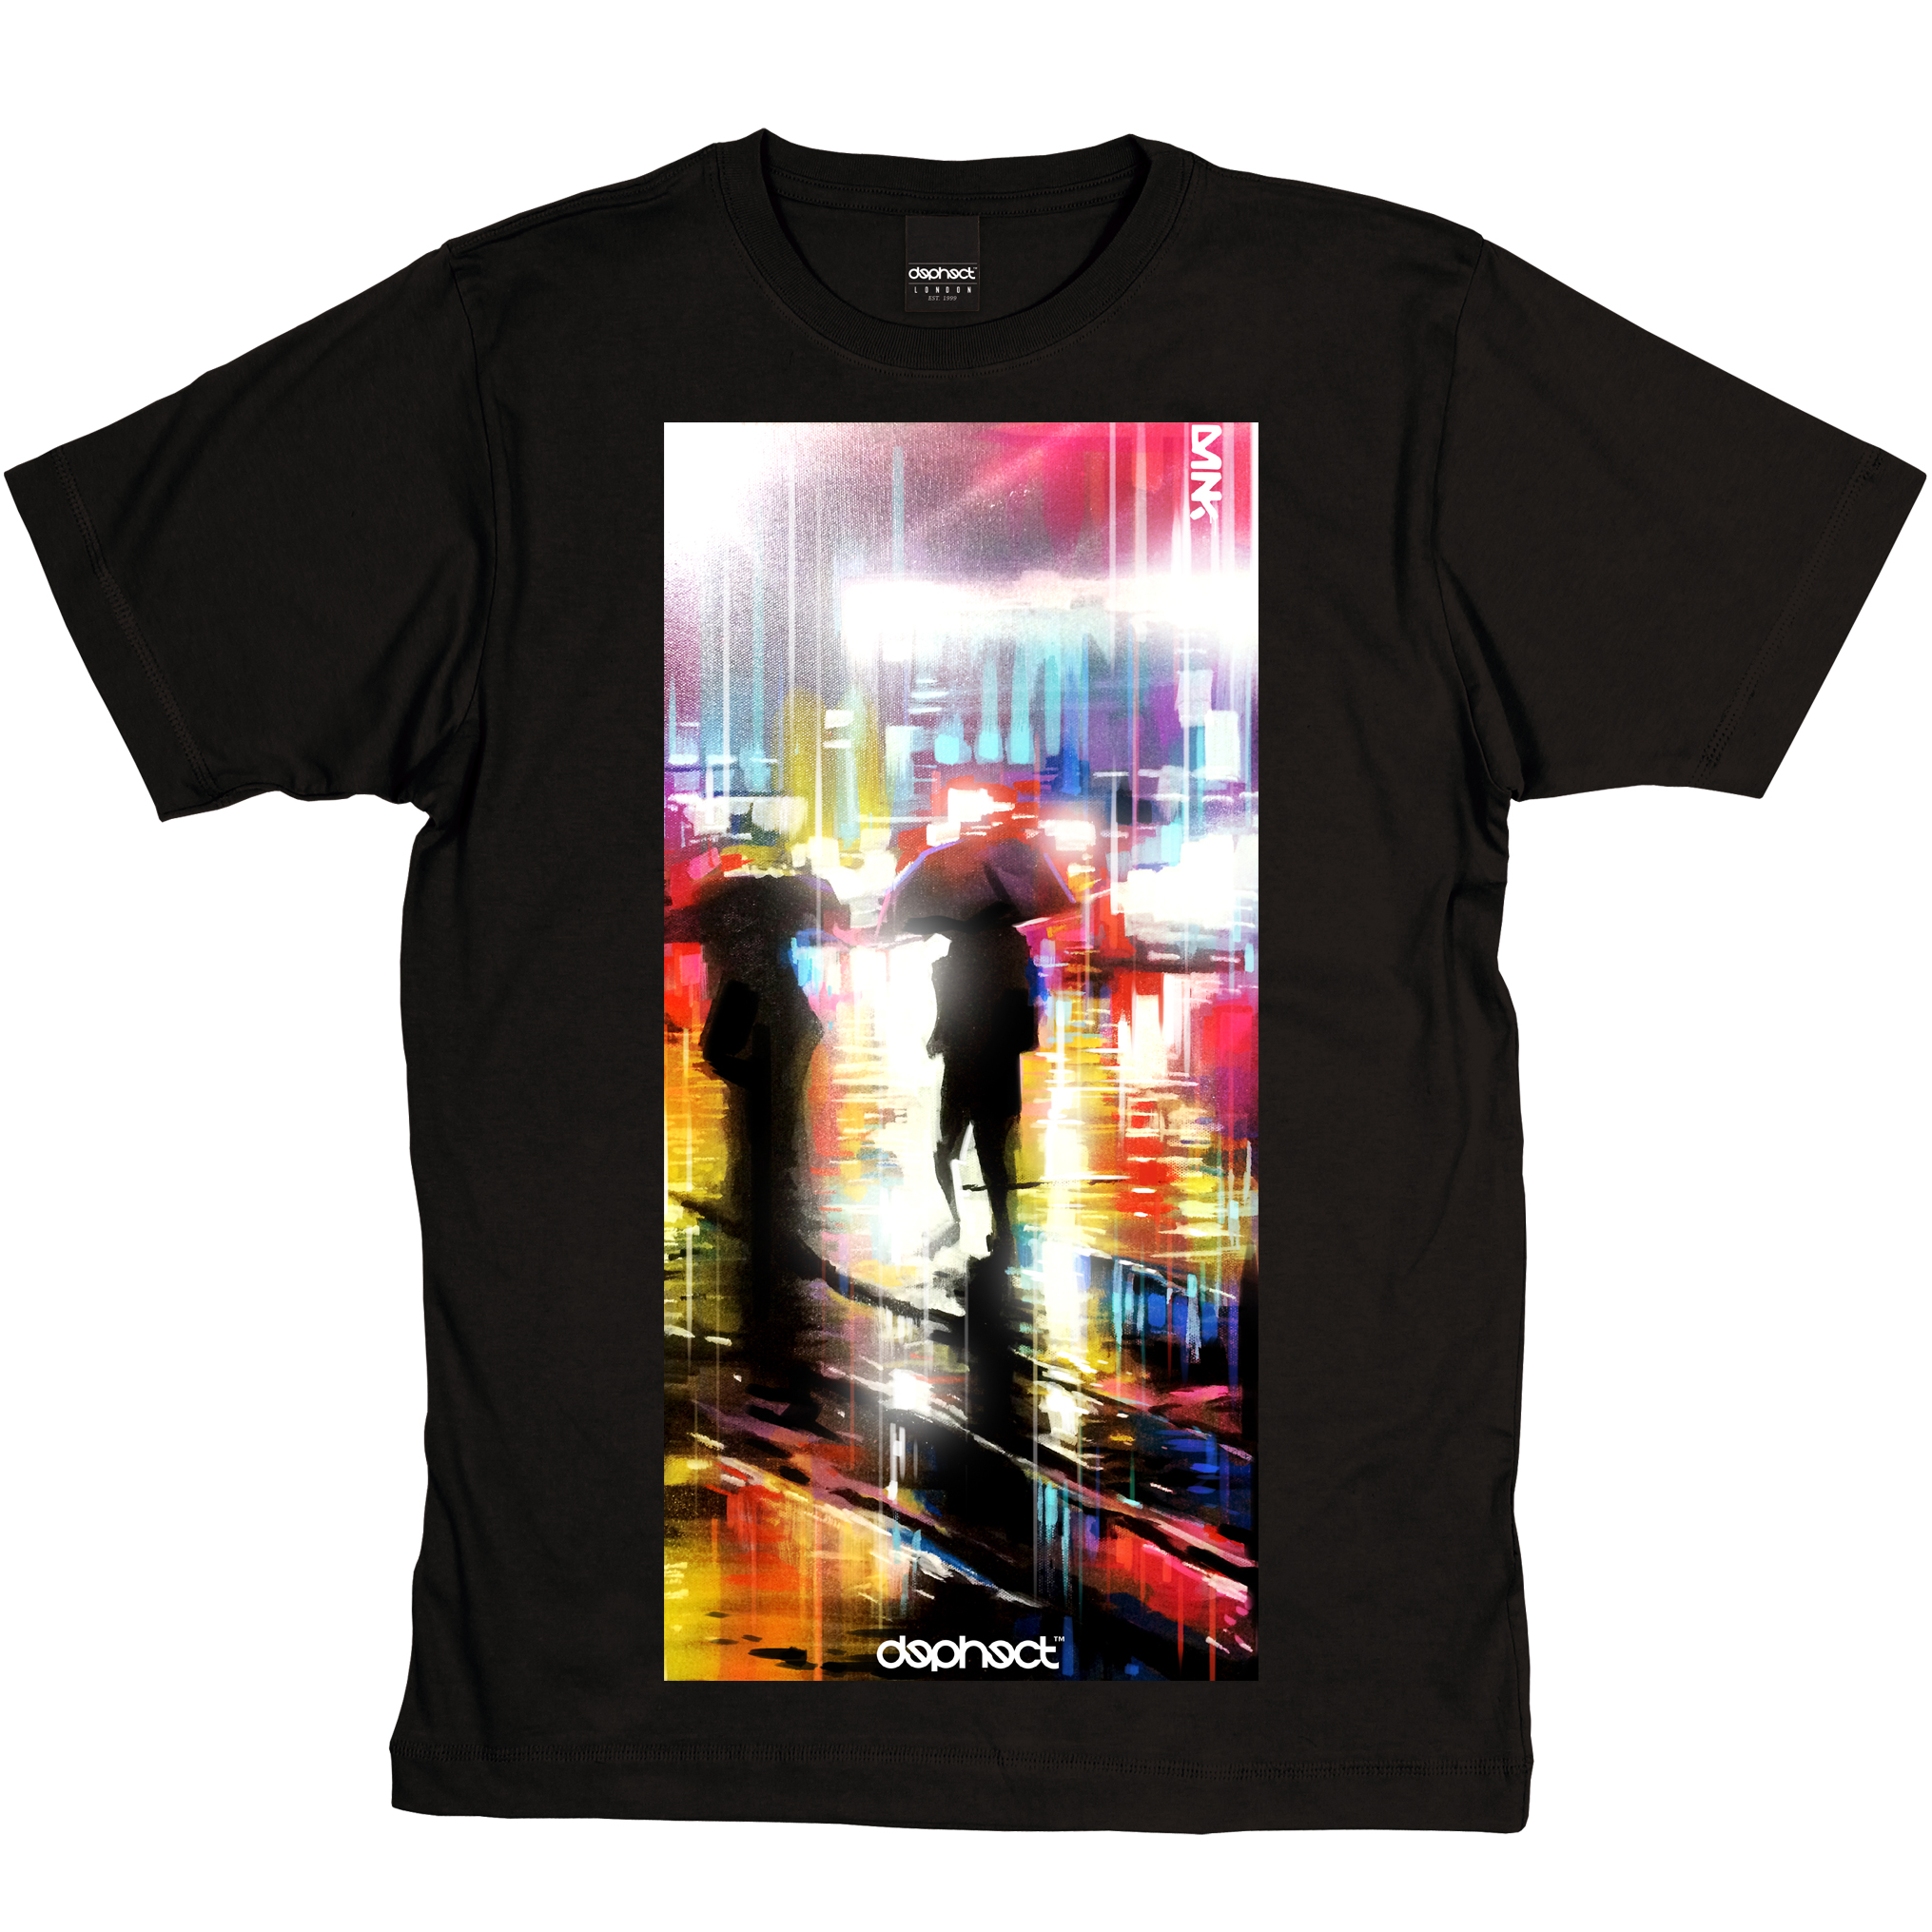 Hip Hop Brands - Dephect Blade T shirt by Dan Kitchener